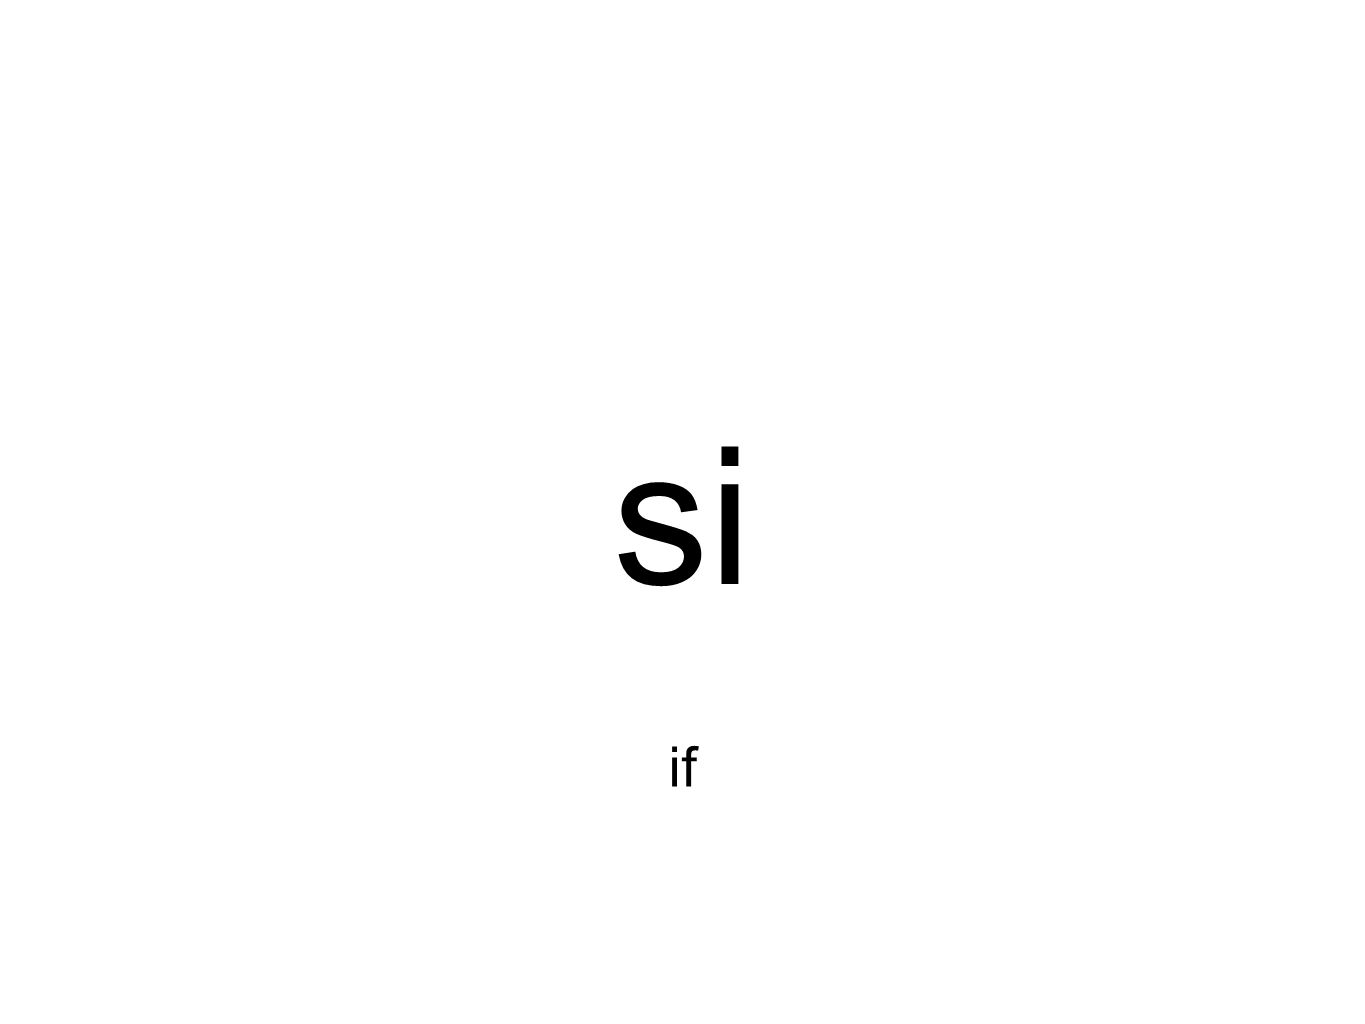 si if